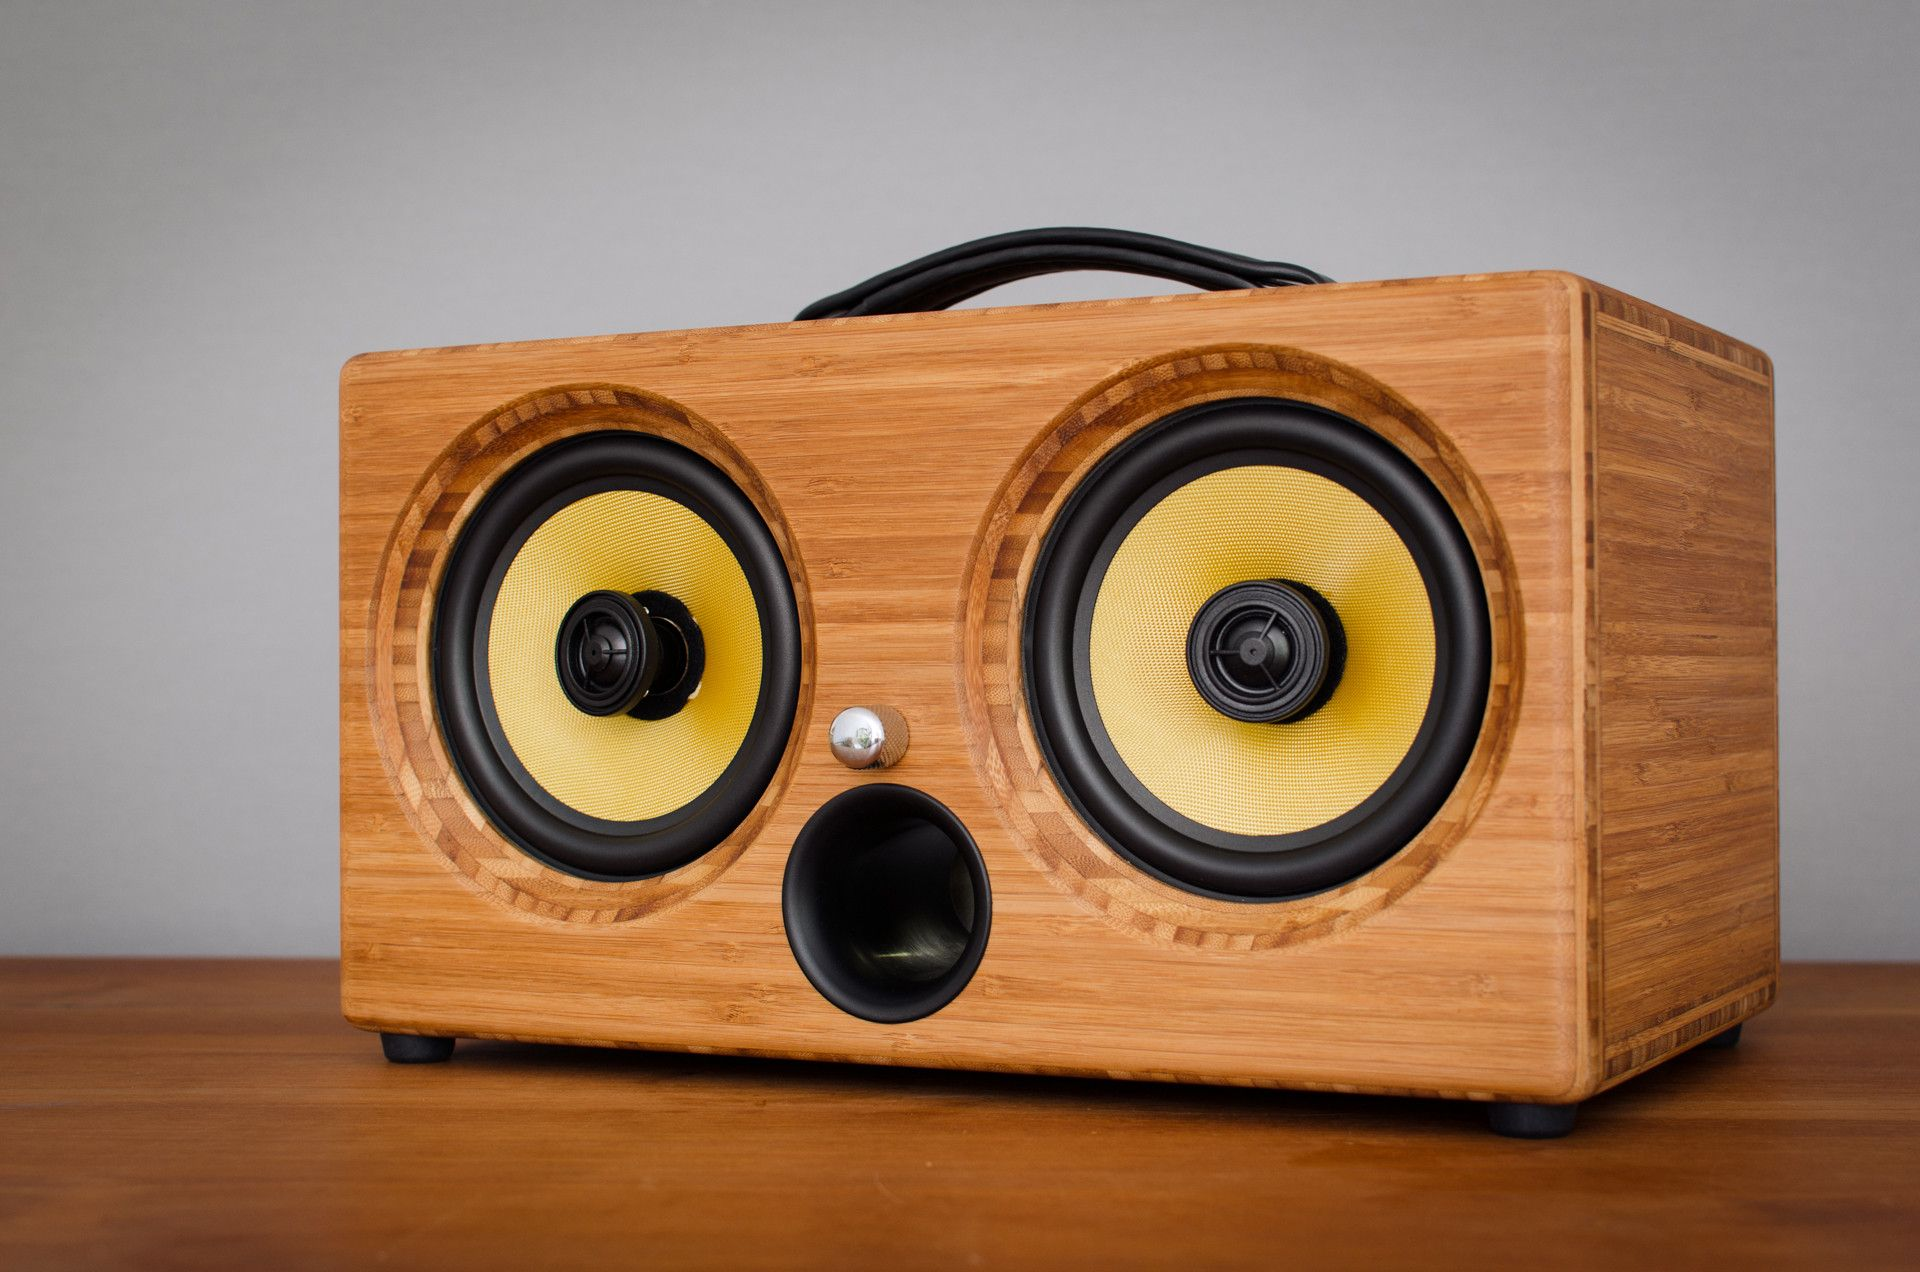 Cool Speaker Boxes thodio ibox™ xc side pressed caramel bamboo   bluetooth speakers